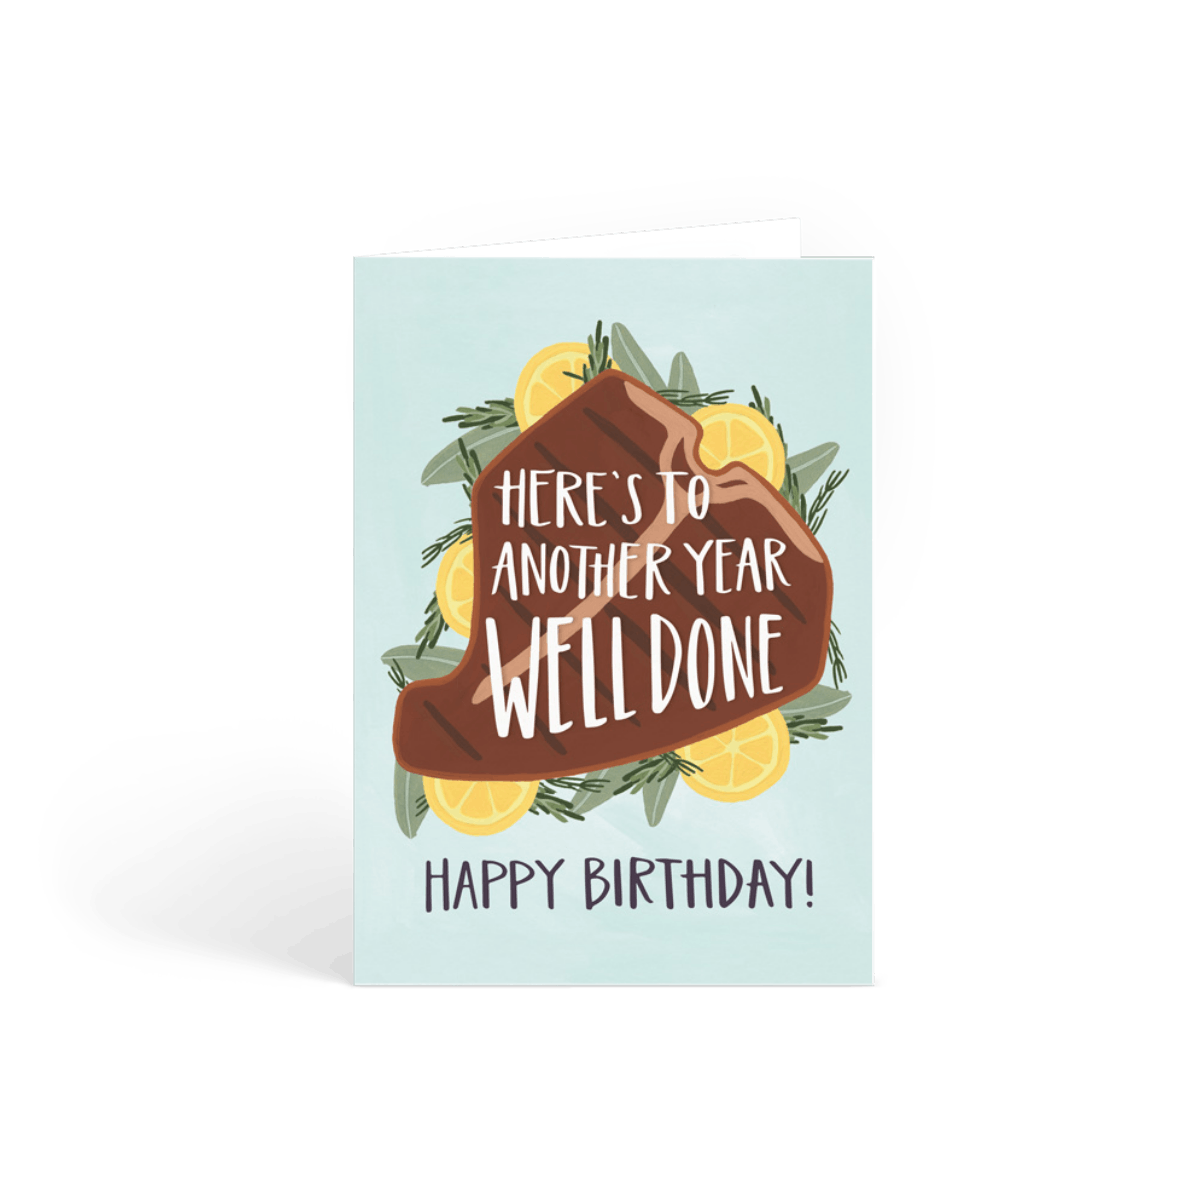 Https%3a%2f%2fwww.papier.com%2fproduct image%2f12297%2f2%2fwell done birthday 3096 front 1476785712.png?ixlib=rb 1.1